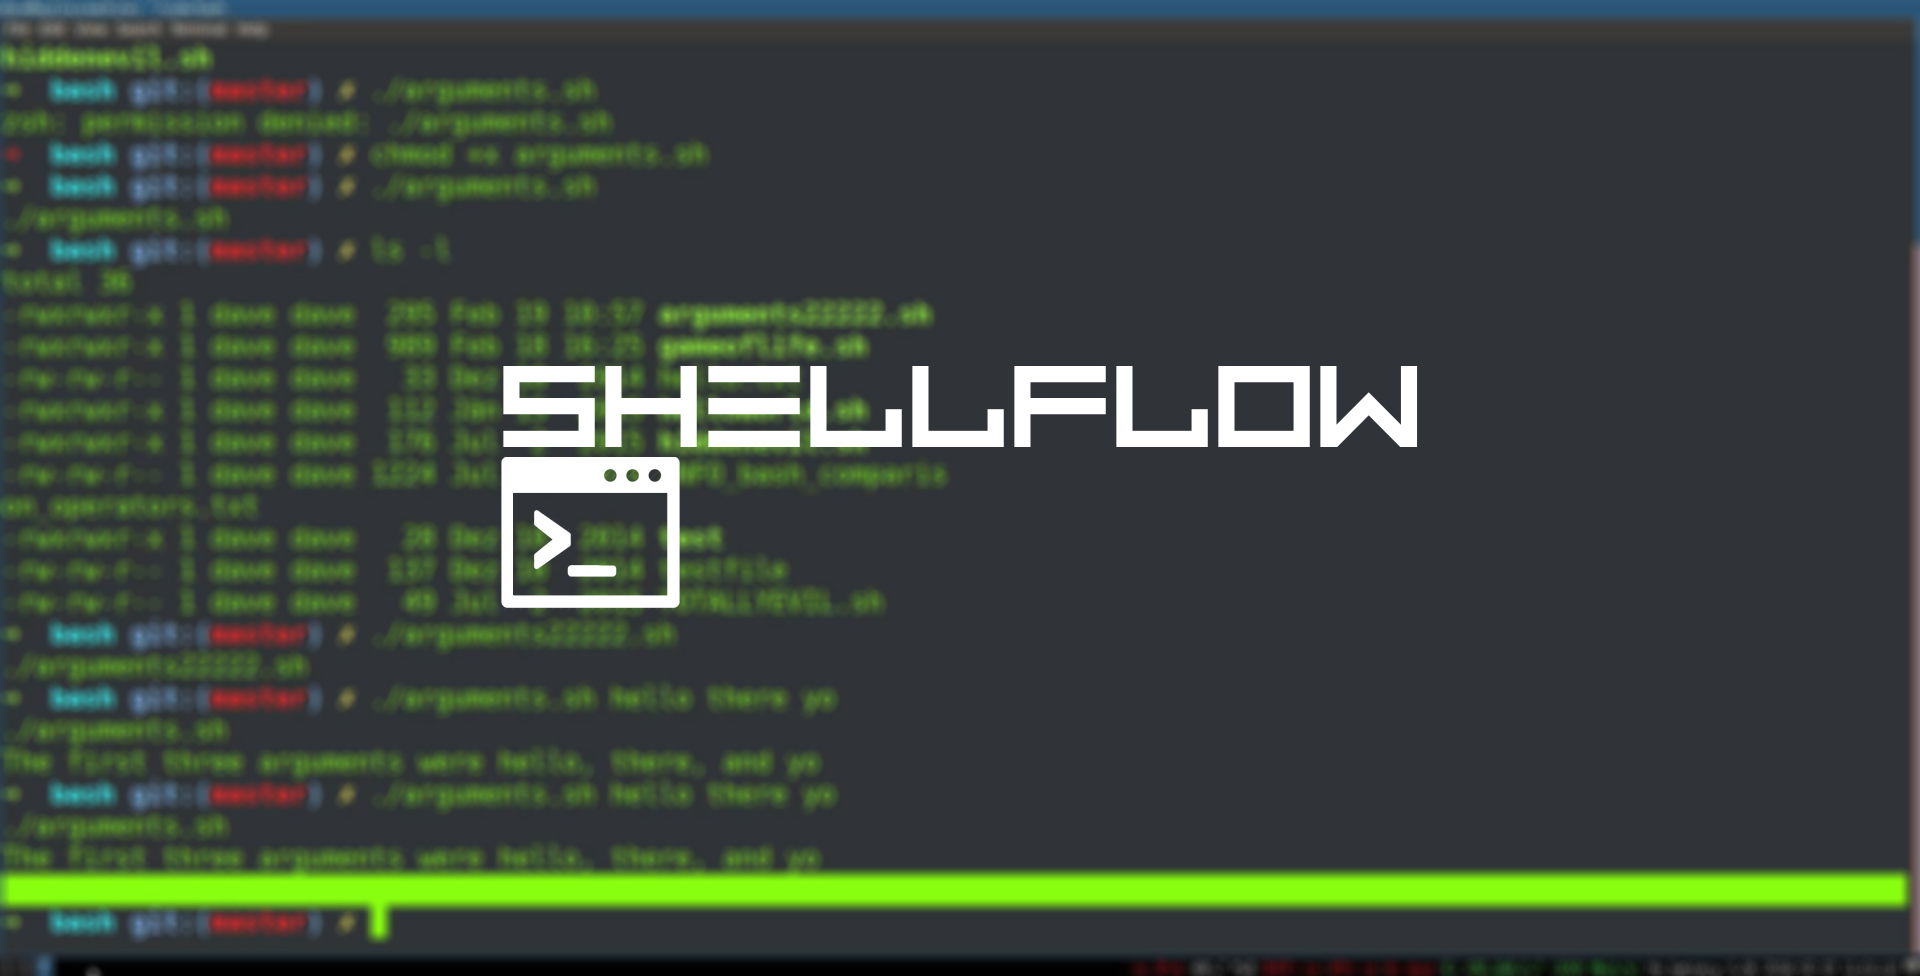 ShellFl0w – Requisiti